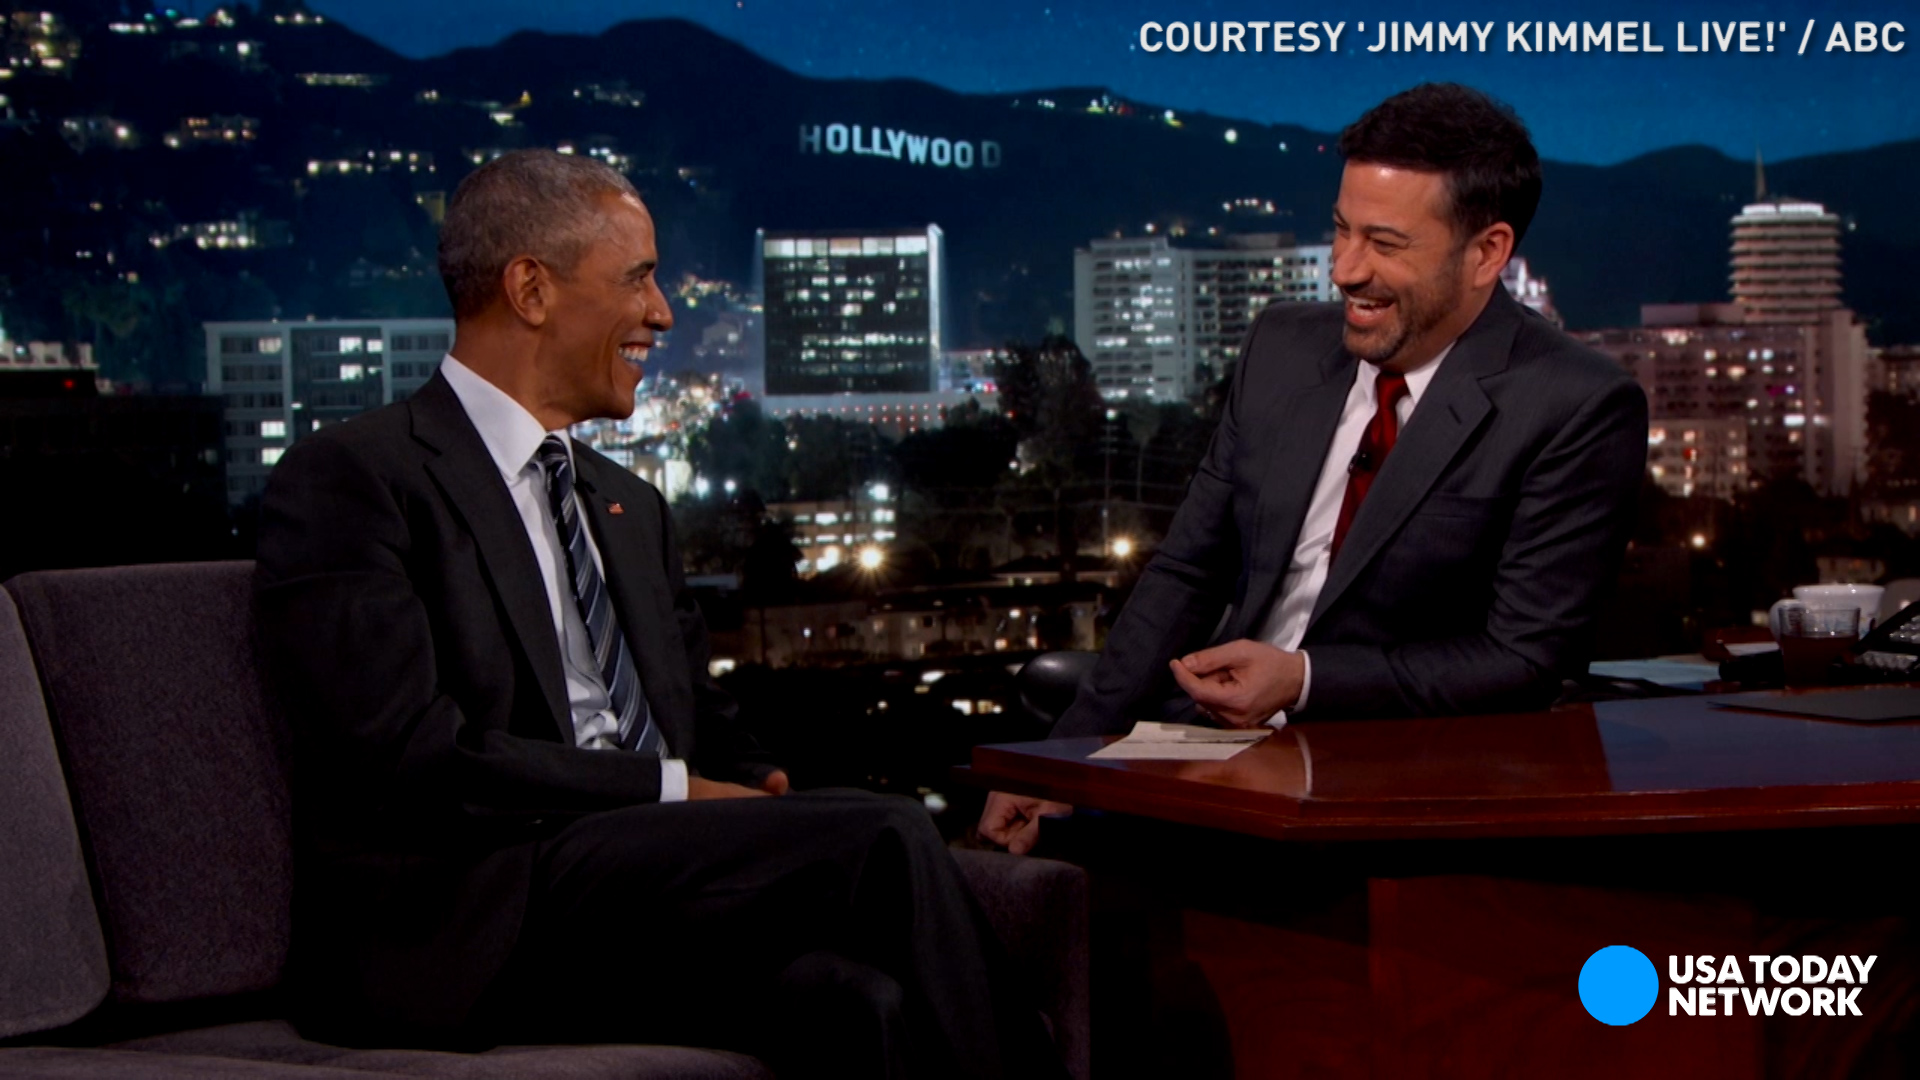 Obama jokes about life after the White House